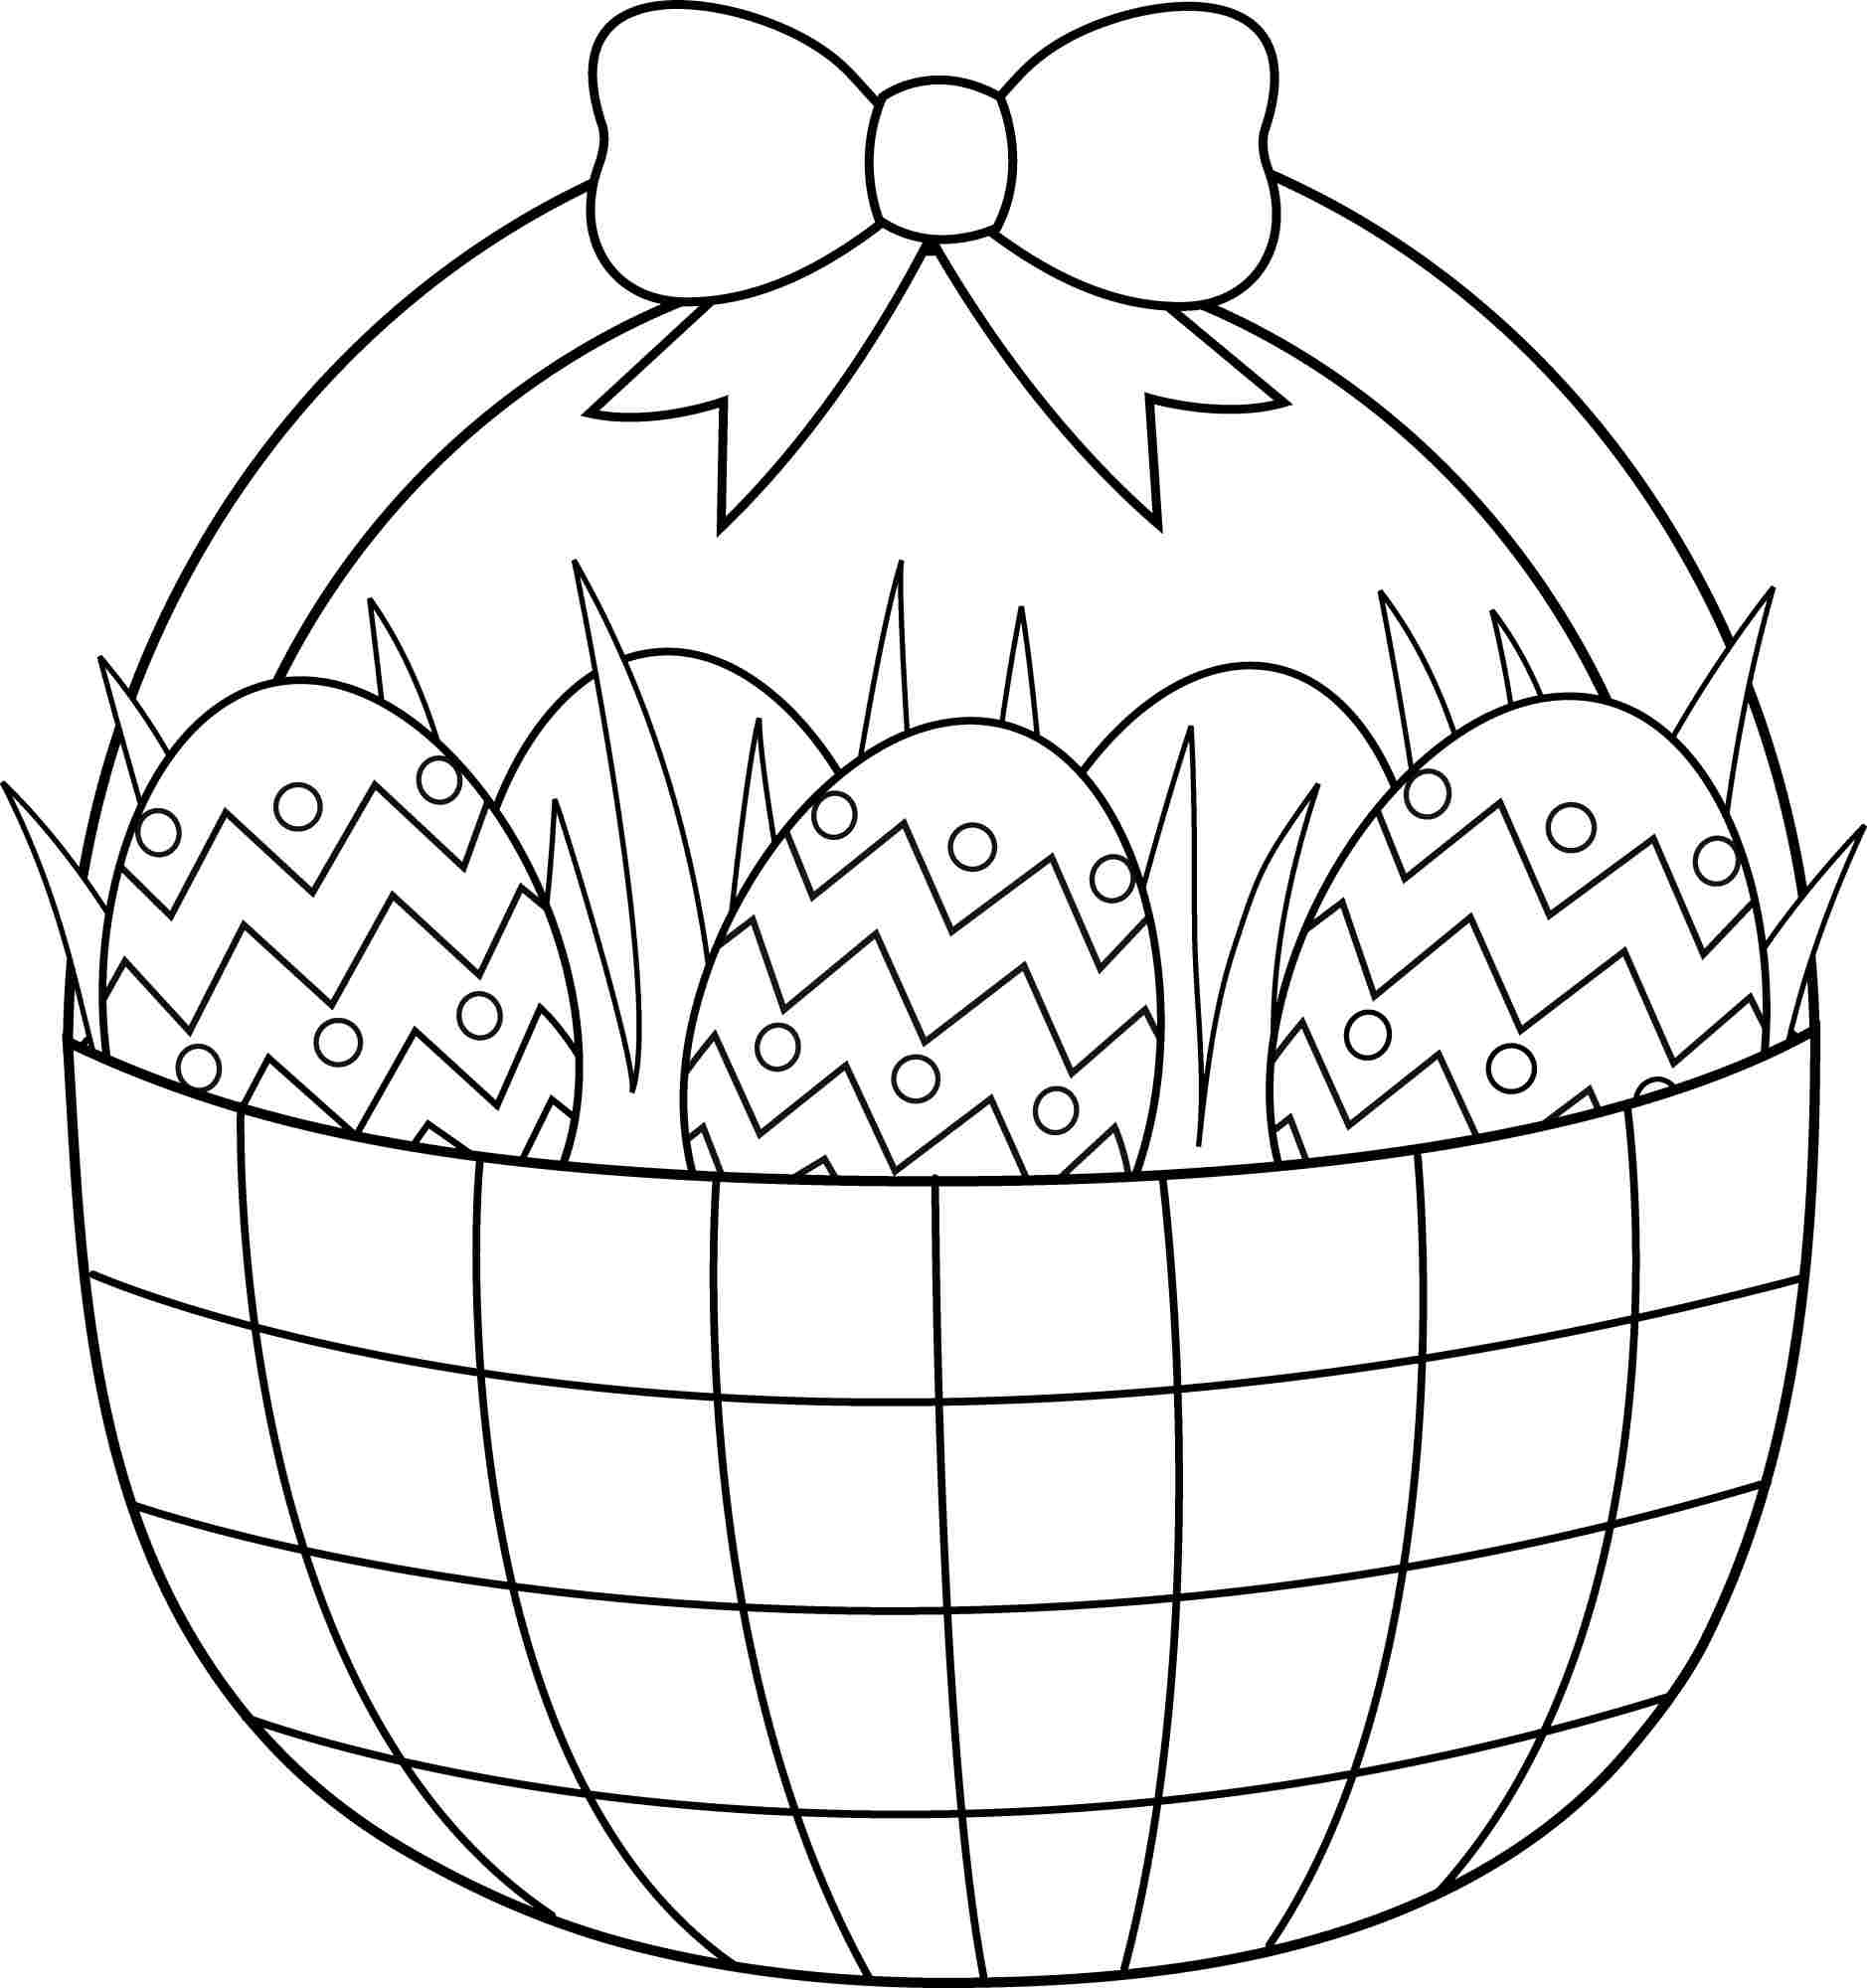 Coloring Pages : Coloring Pages Printable Easter Photo Ideas Drawing - Free Printable Easter Pages